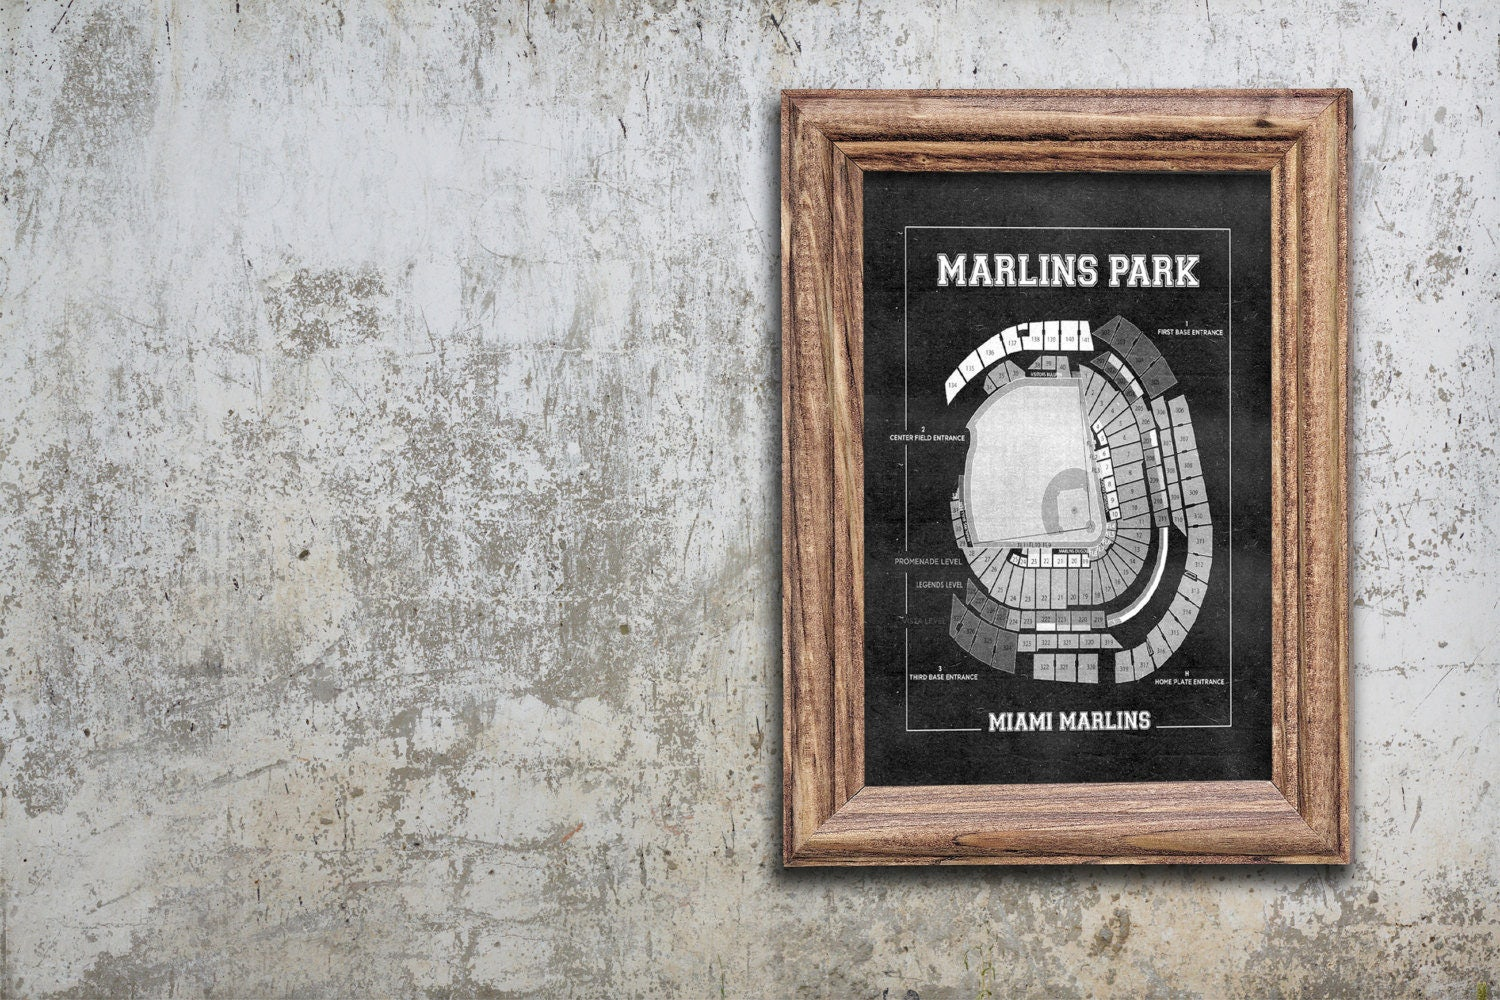 Vintage print of marlins park seating chart miami marlins baseball vintage print of marlins park seating chart miami marlins baseball blueprint on photo paper matte paper or stretched canvas malvernweather Gallery